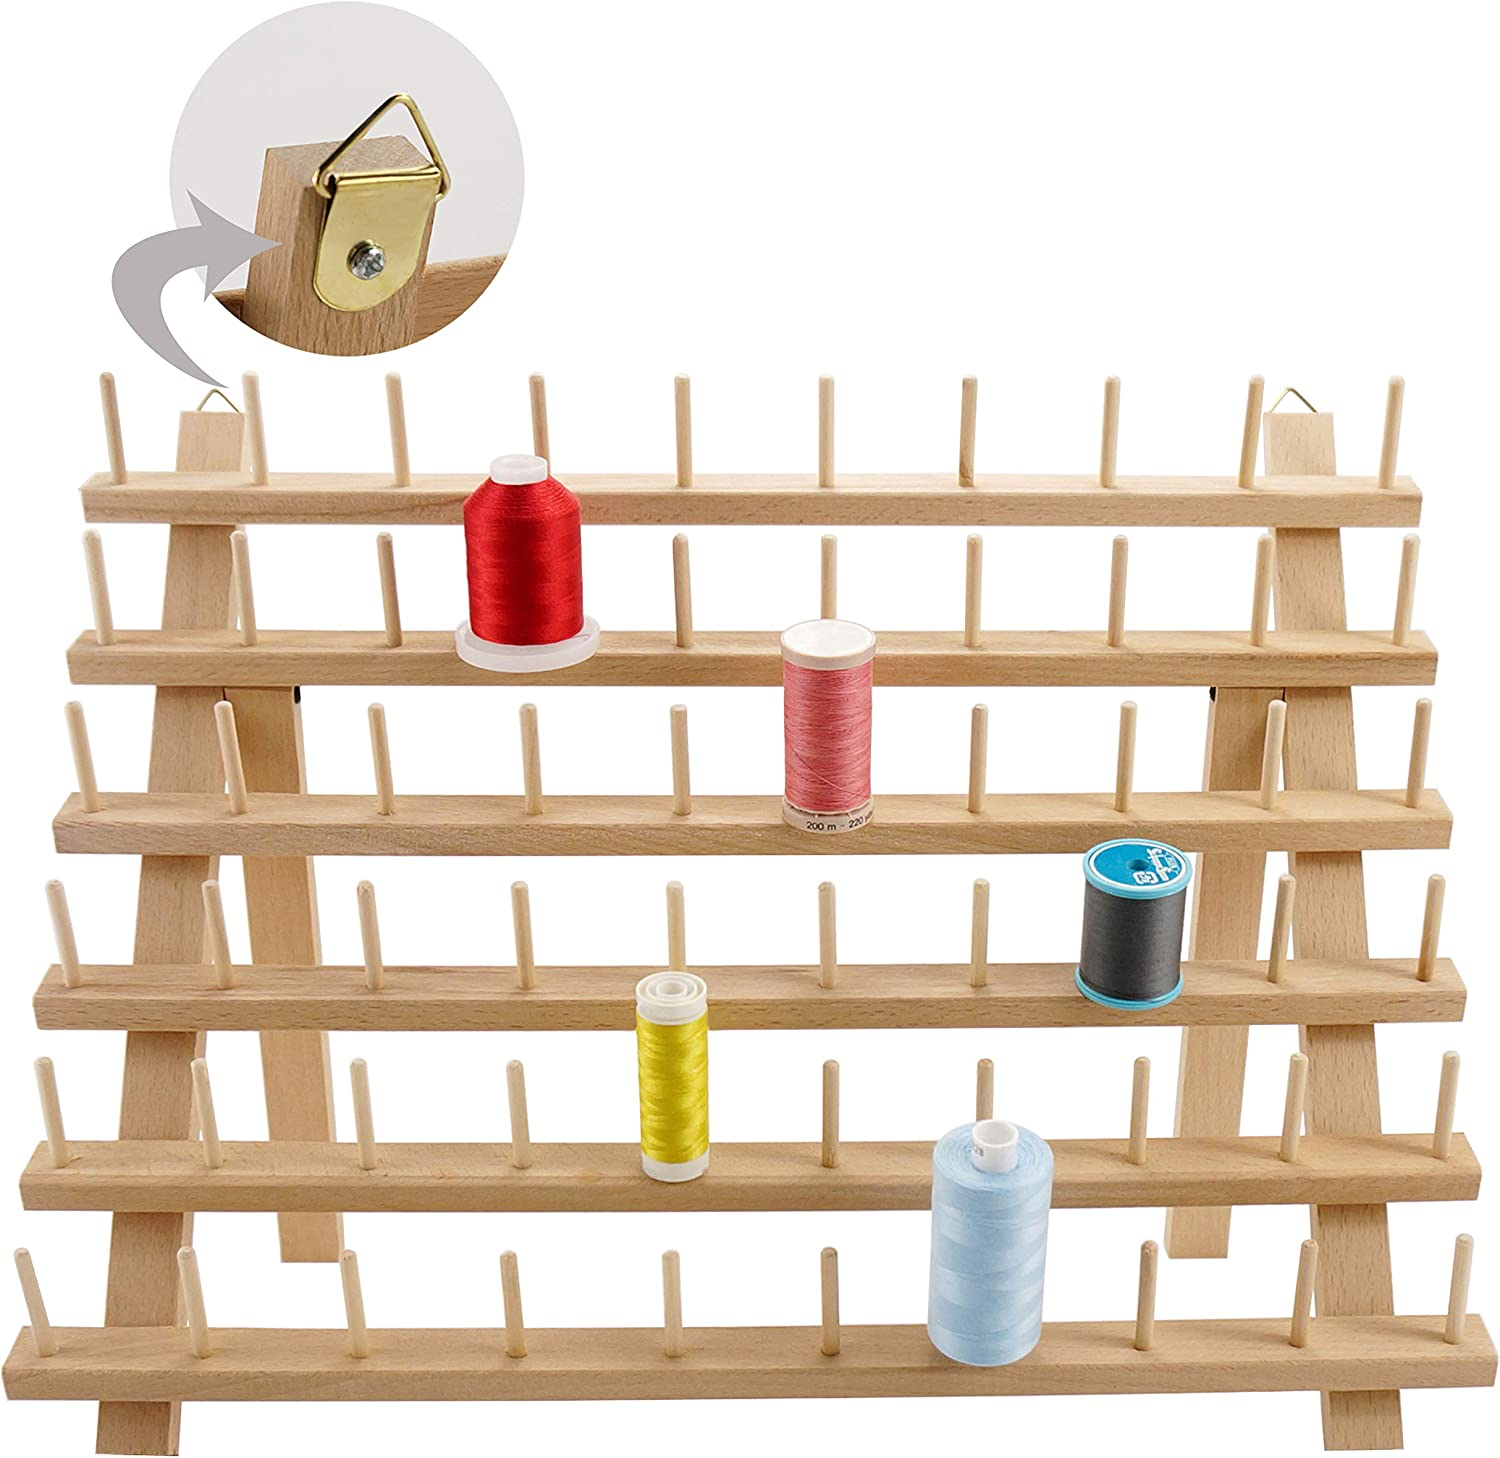 60 Spools 2 Pack SAND MINE Wooden Thread Rack Sewing and Embroidery Thread Holder